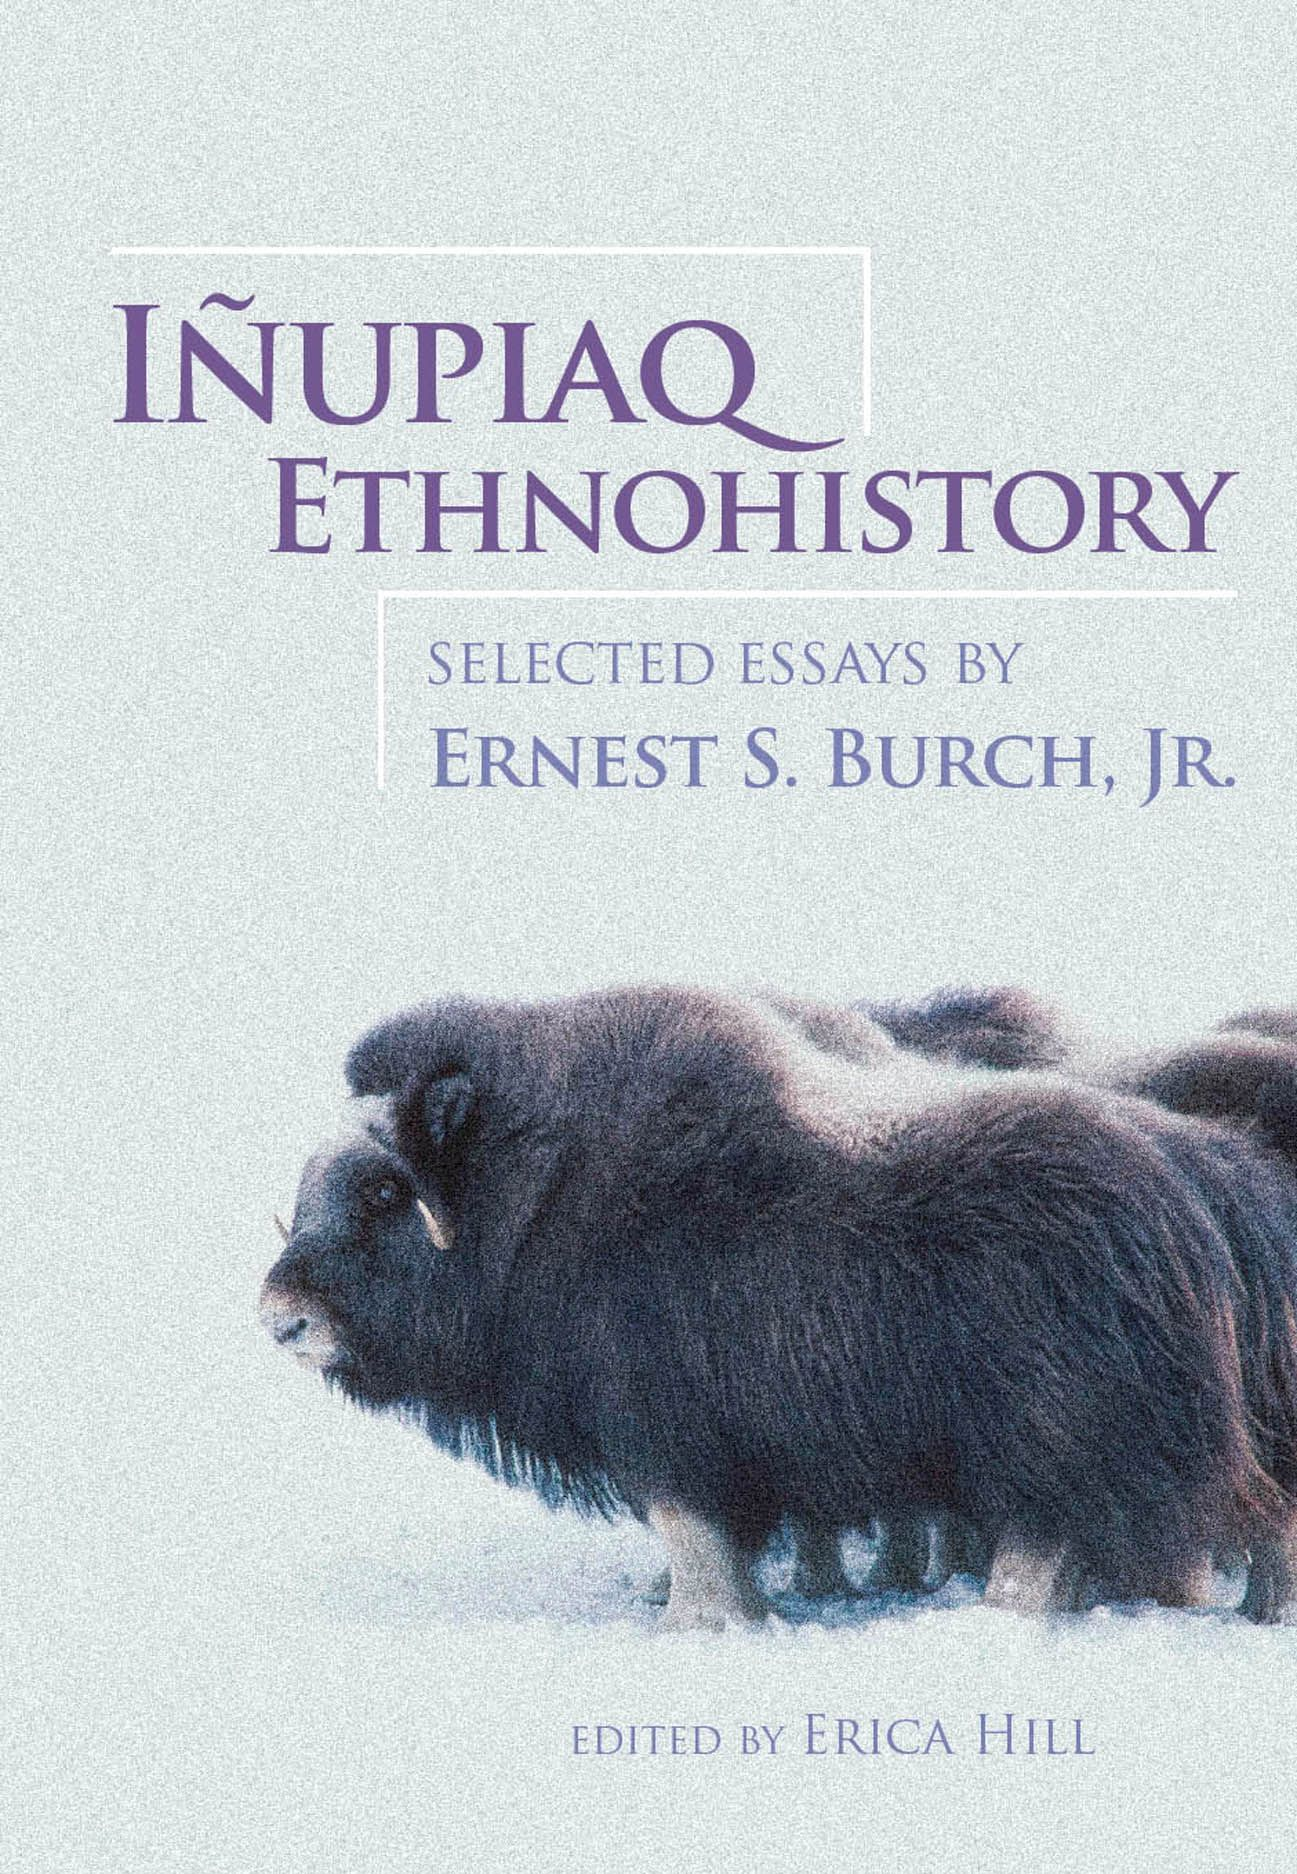 Iñupiaq Ethnohistory: Selected Essays by Ernest S. Burch, Jr.